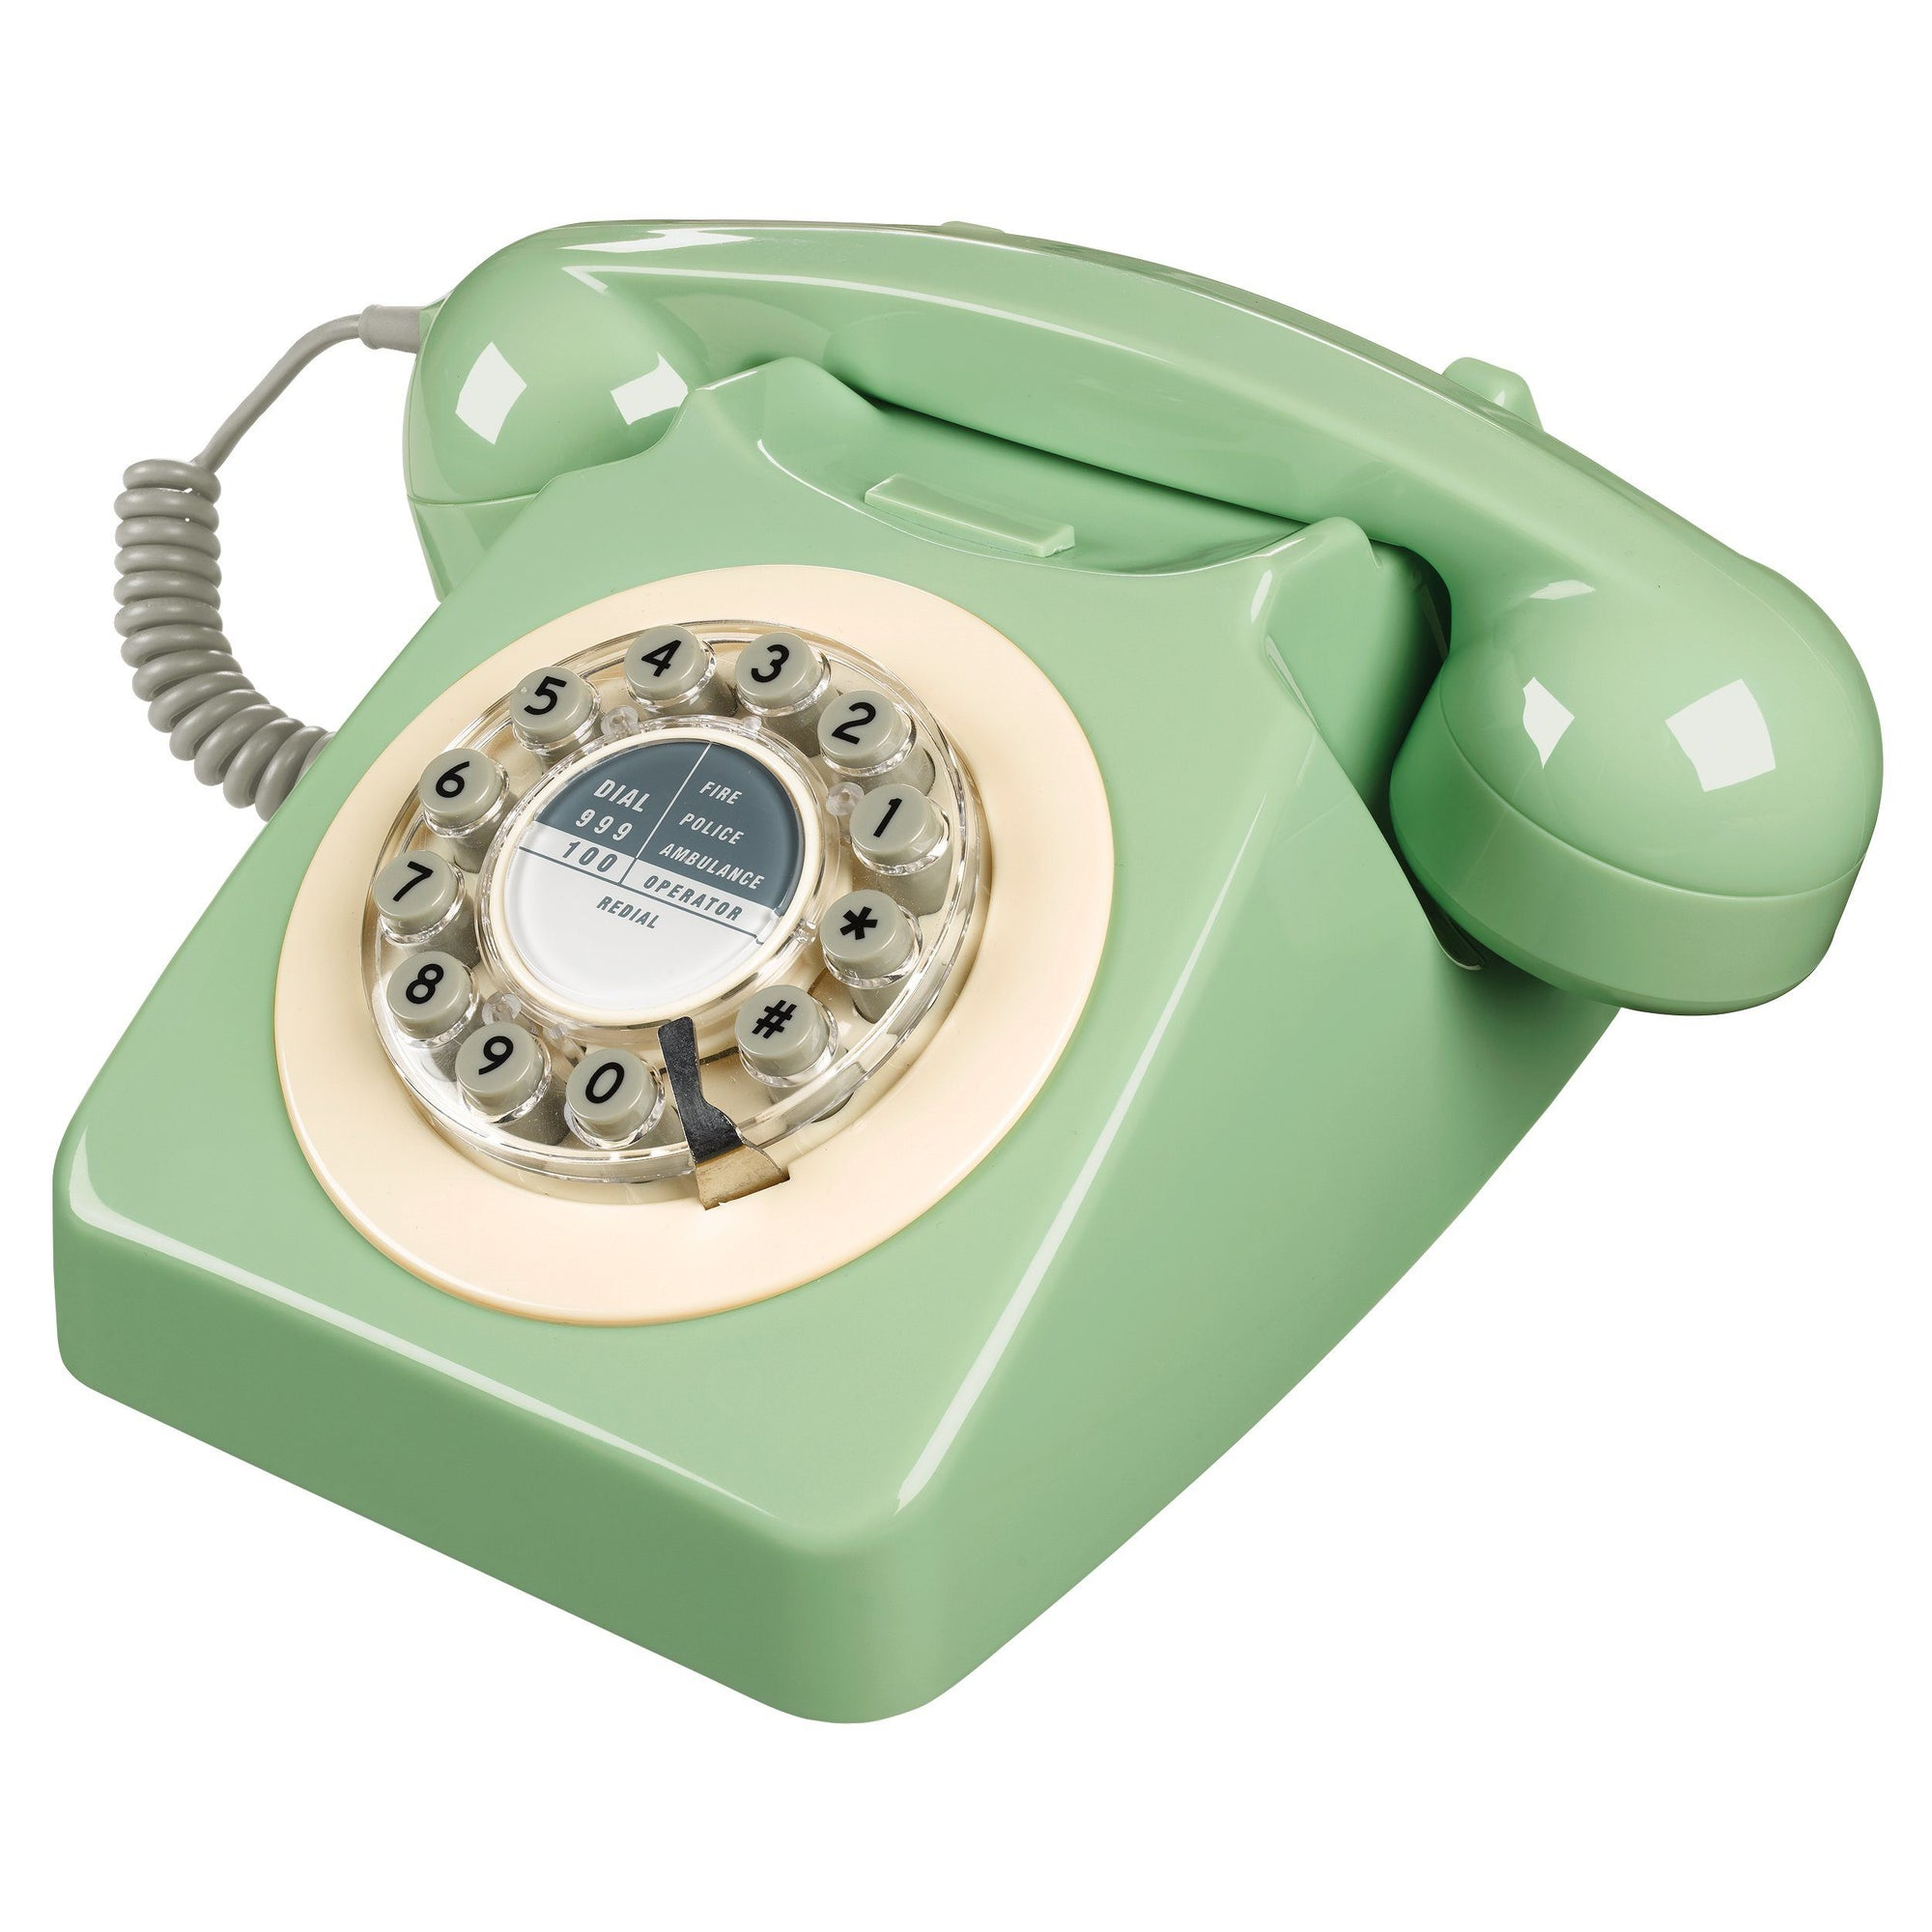 Swedish Green 746 Telephone Classic 1960's Design - BouChic